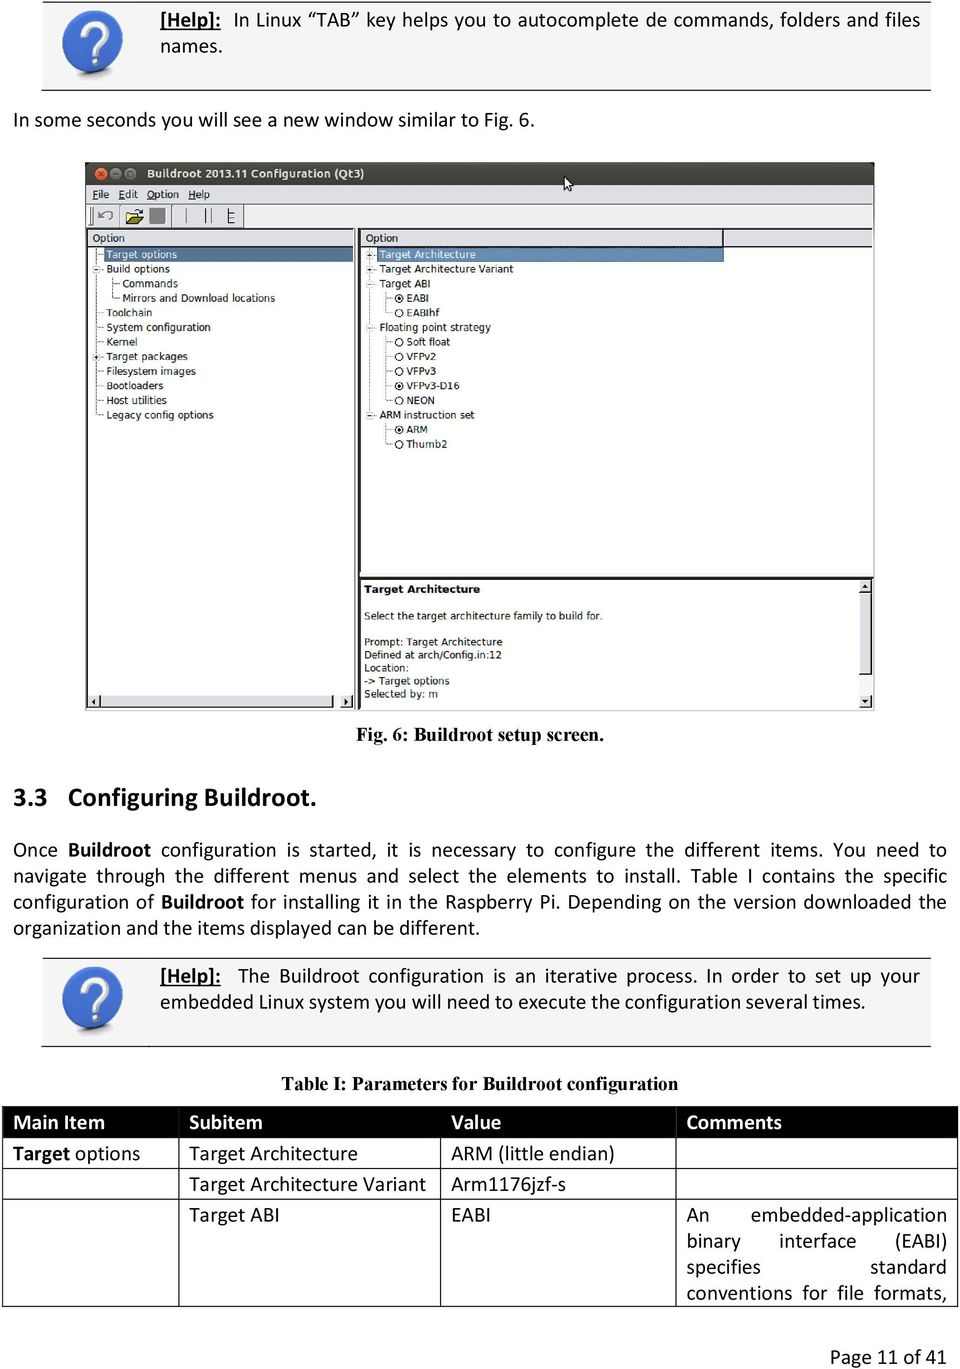 Table I contains the specific configuration of Buildroot for installing it in the Raspberry Pi. Depending on the version downloaded the organization and the items displayed can be different.